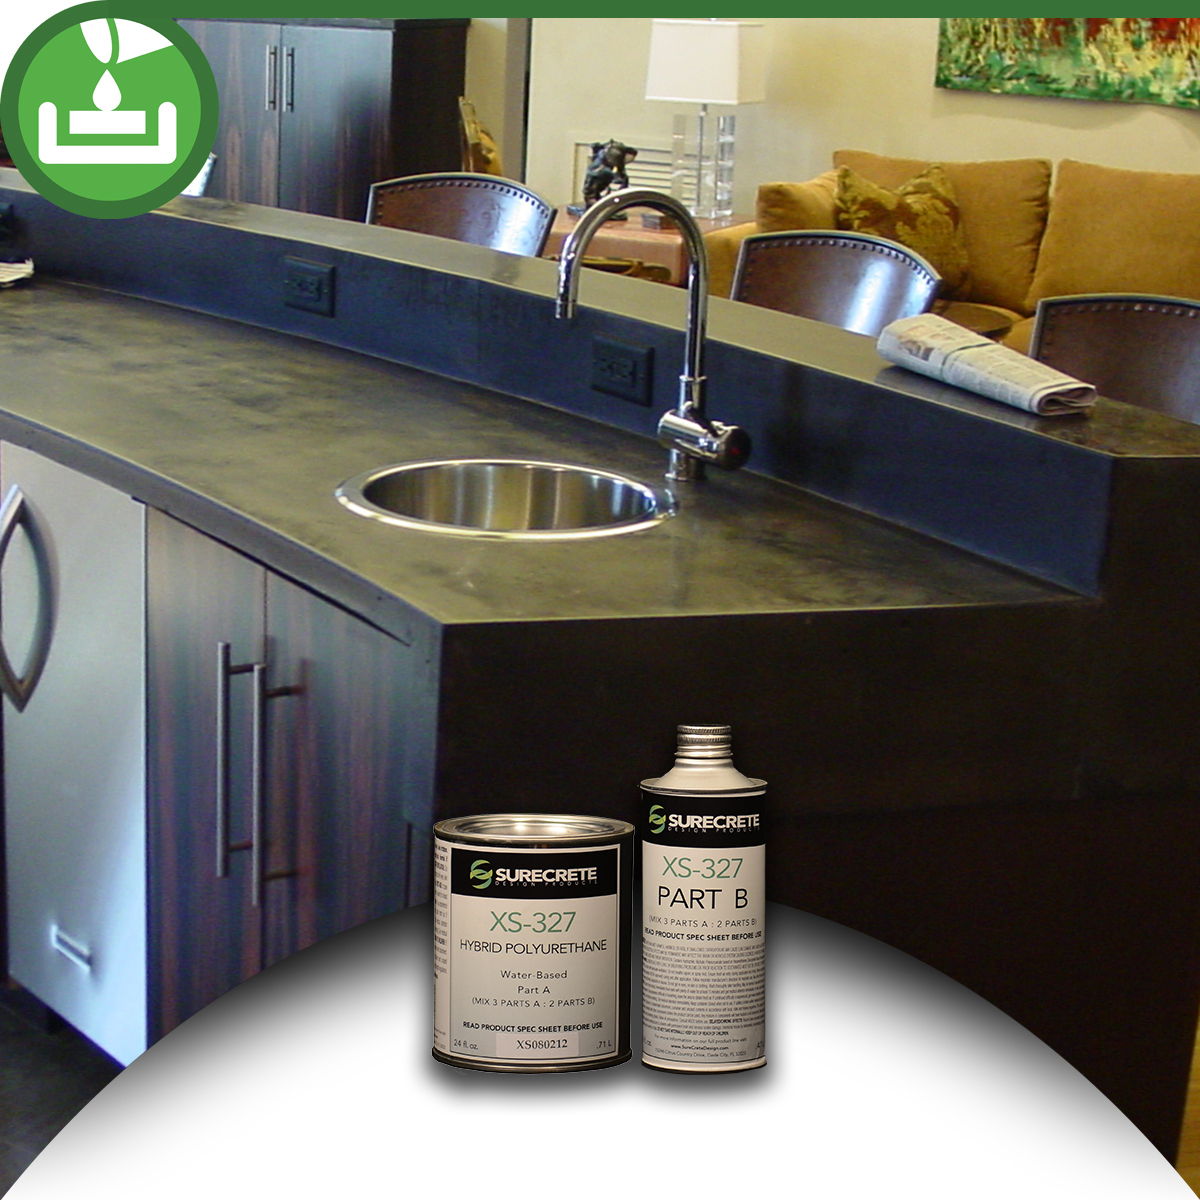 Countertop Paint Sealer : XS-327 Concrete Countertop Sealer - BDC Supply Company